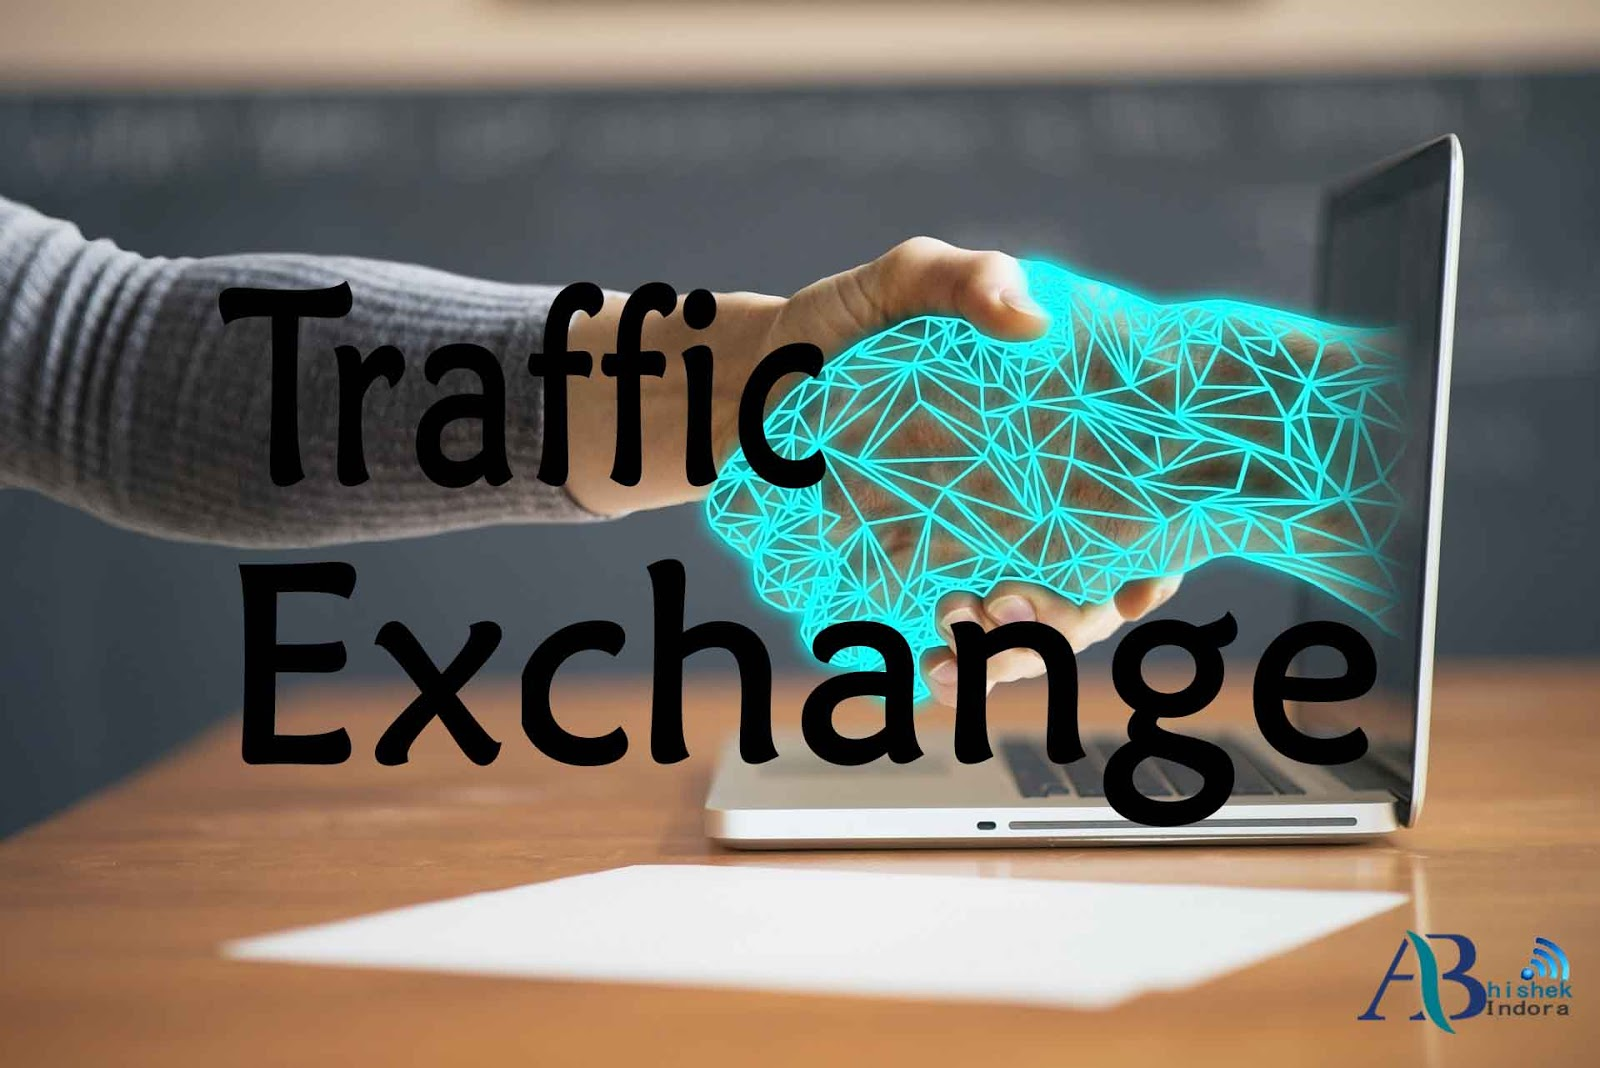 What is Traffic Exchange